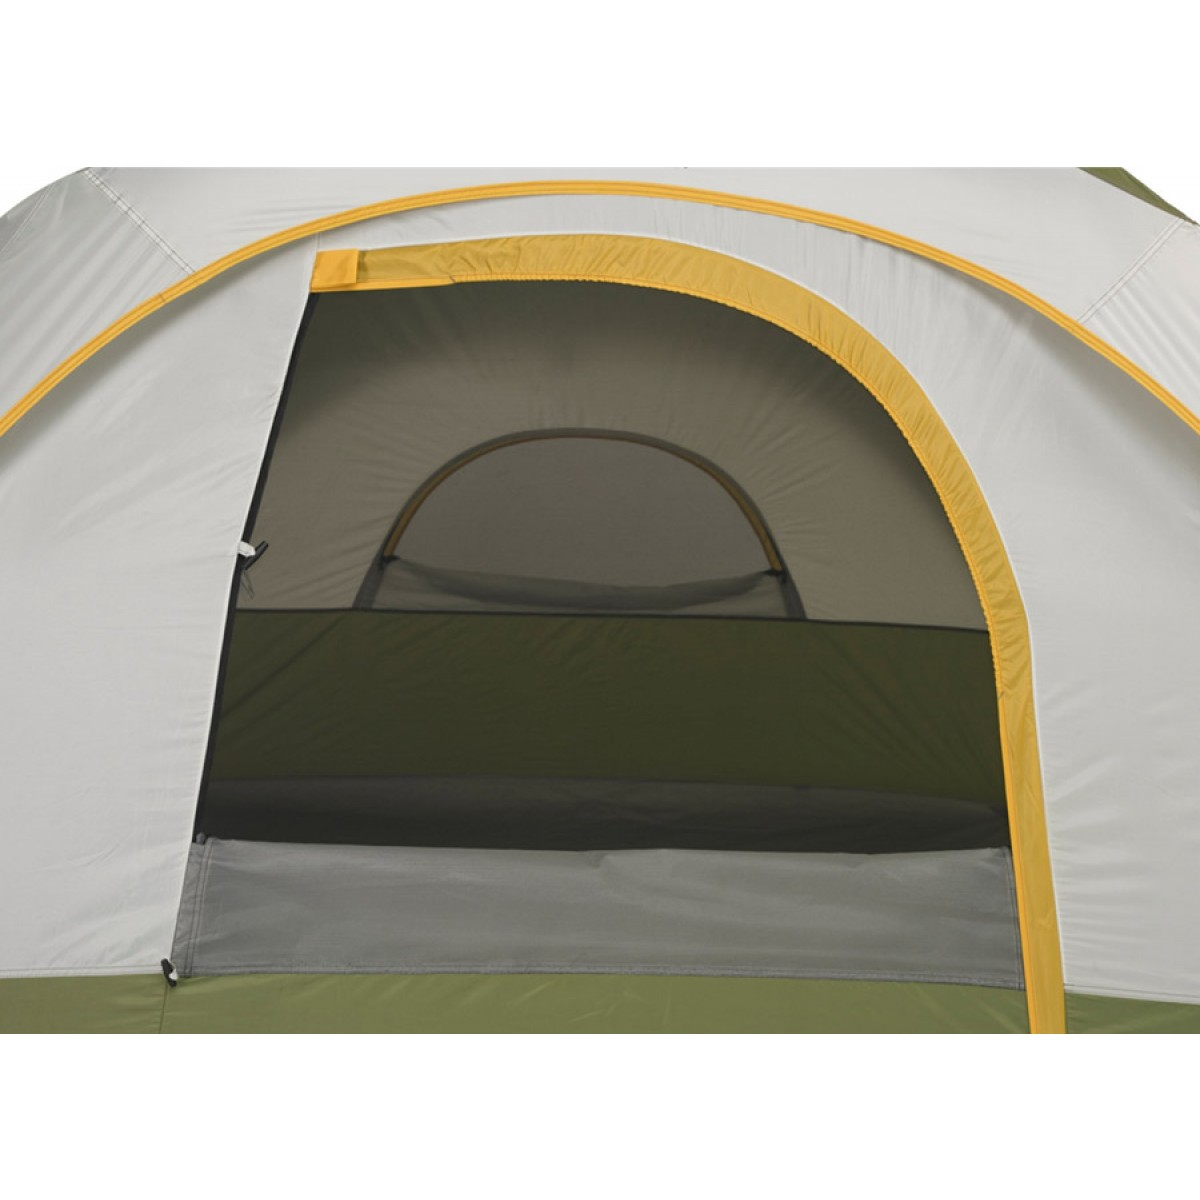 ... 4; Wenzel Lone Tree 2 Person Tent 36501 Image 5 ...  sc 1 st  Kellyco & Wenzel Lone Tree 2 Person Tent- Kellyco